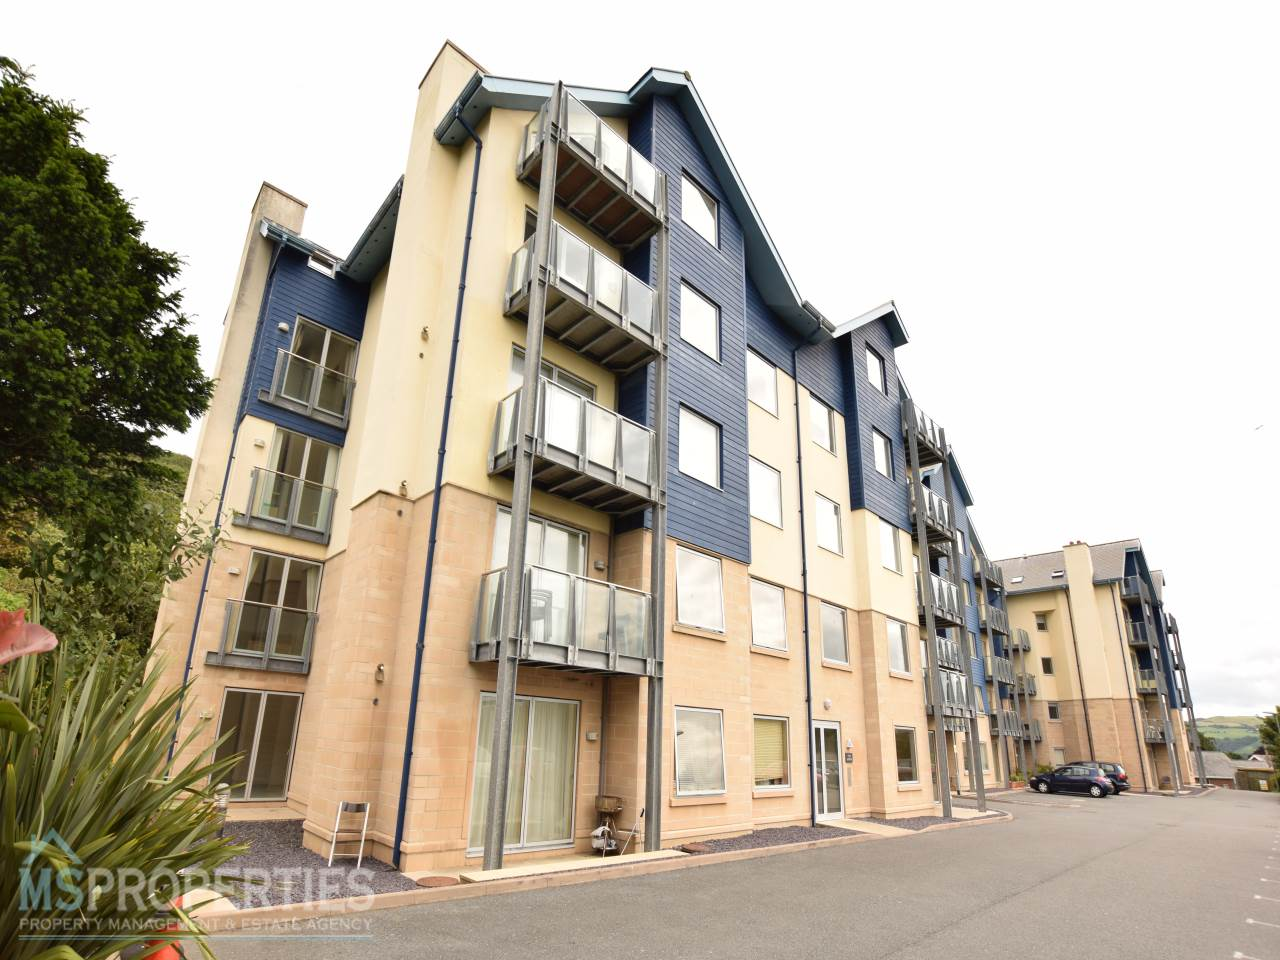 2 bed flat for sale in Plas Dyffryn, North Road, SY23